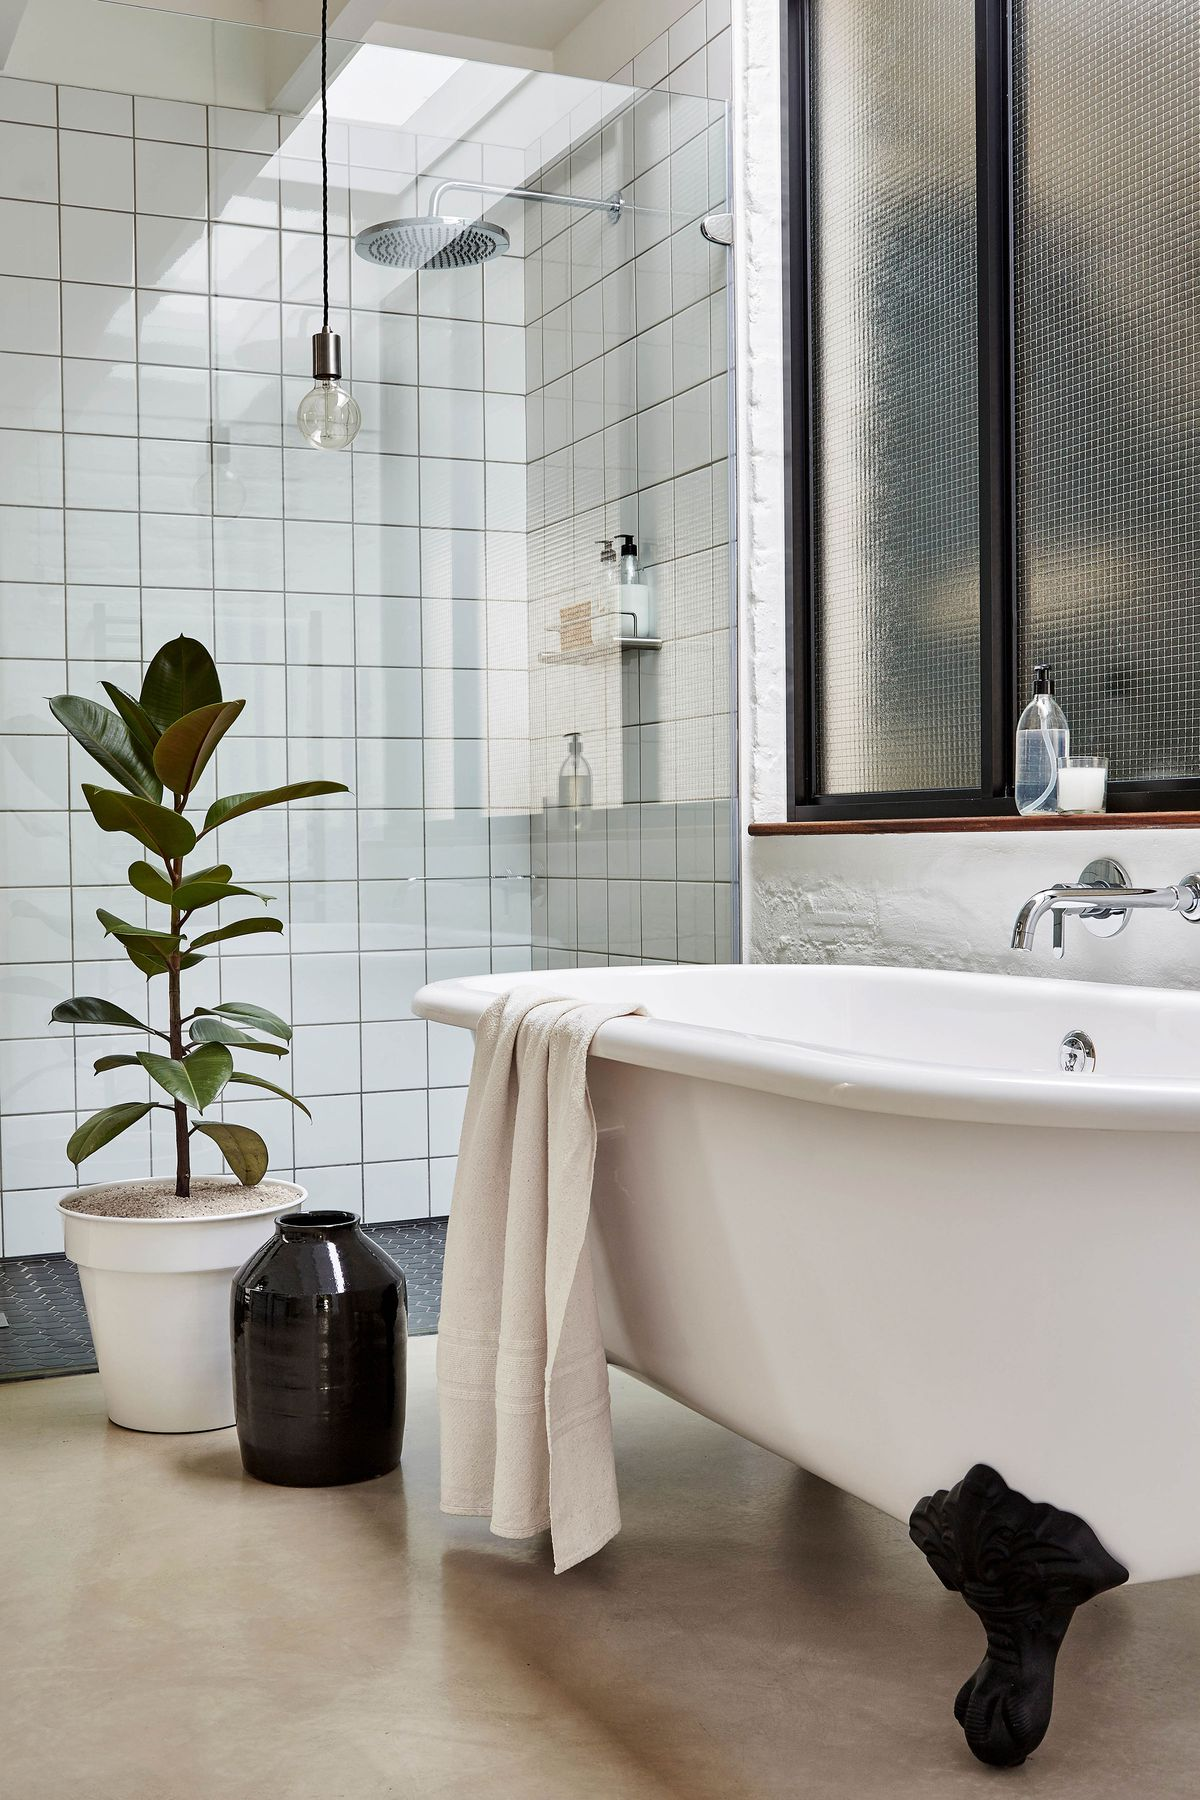 A bathroom with a clawfoot tub and a glass shower, also has a concrete floor.